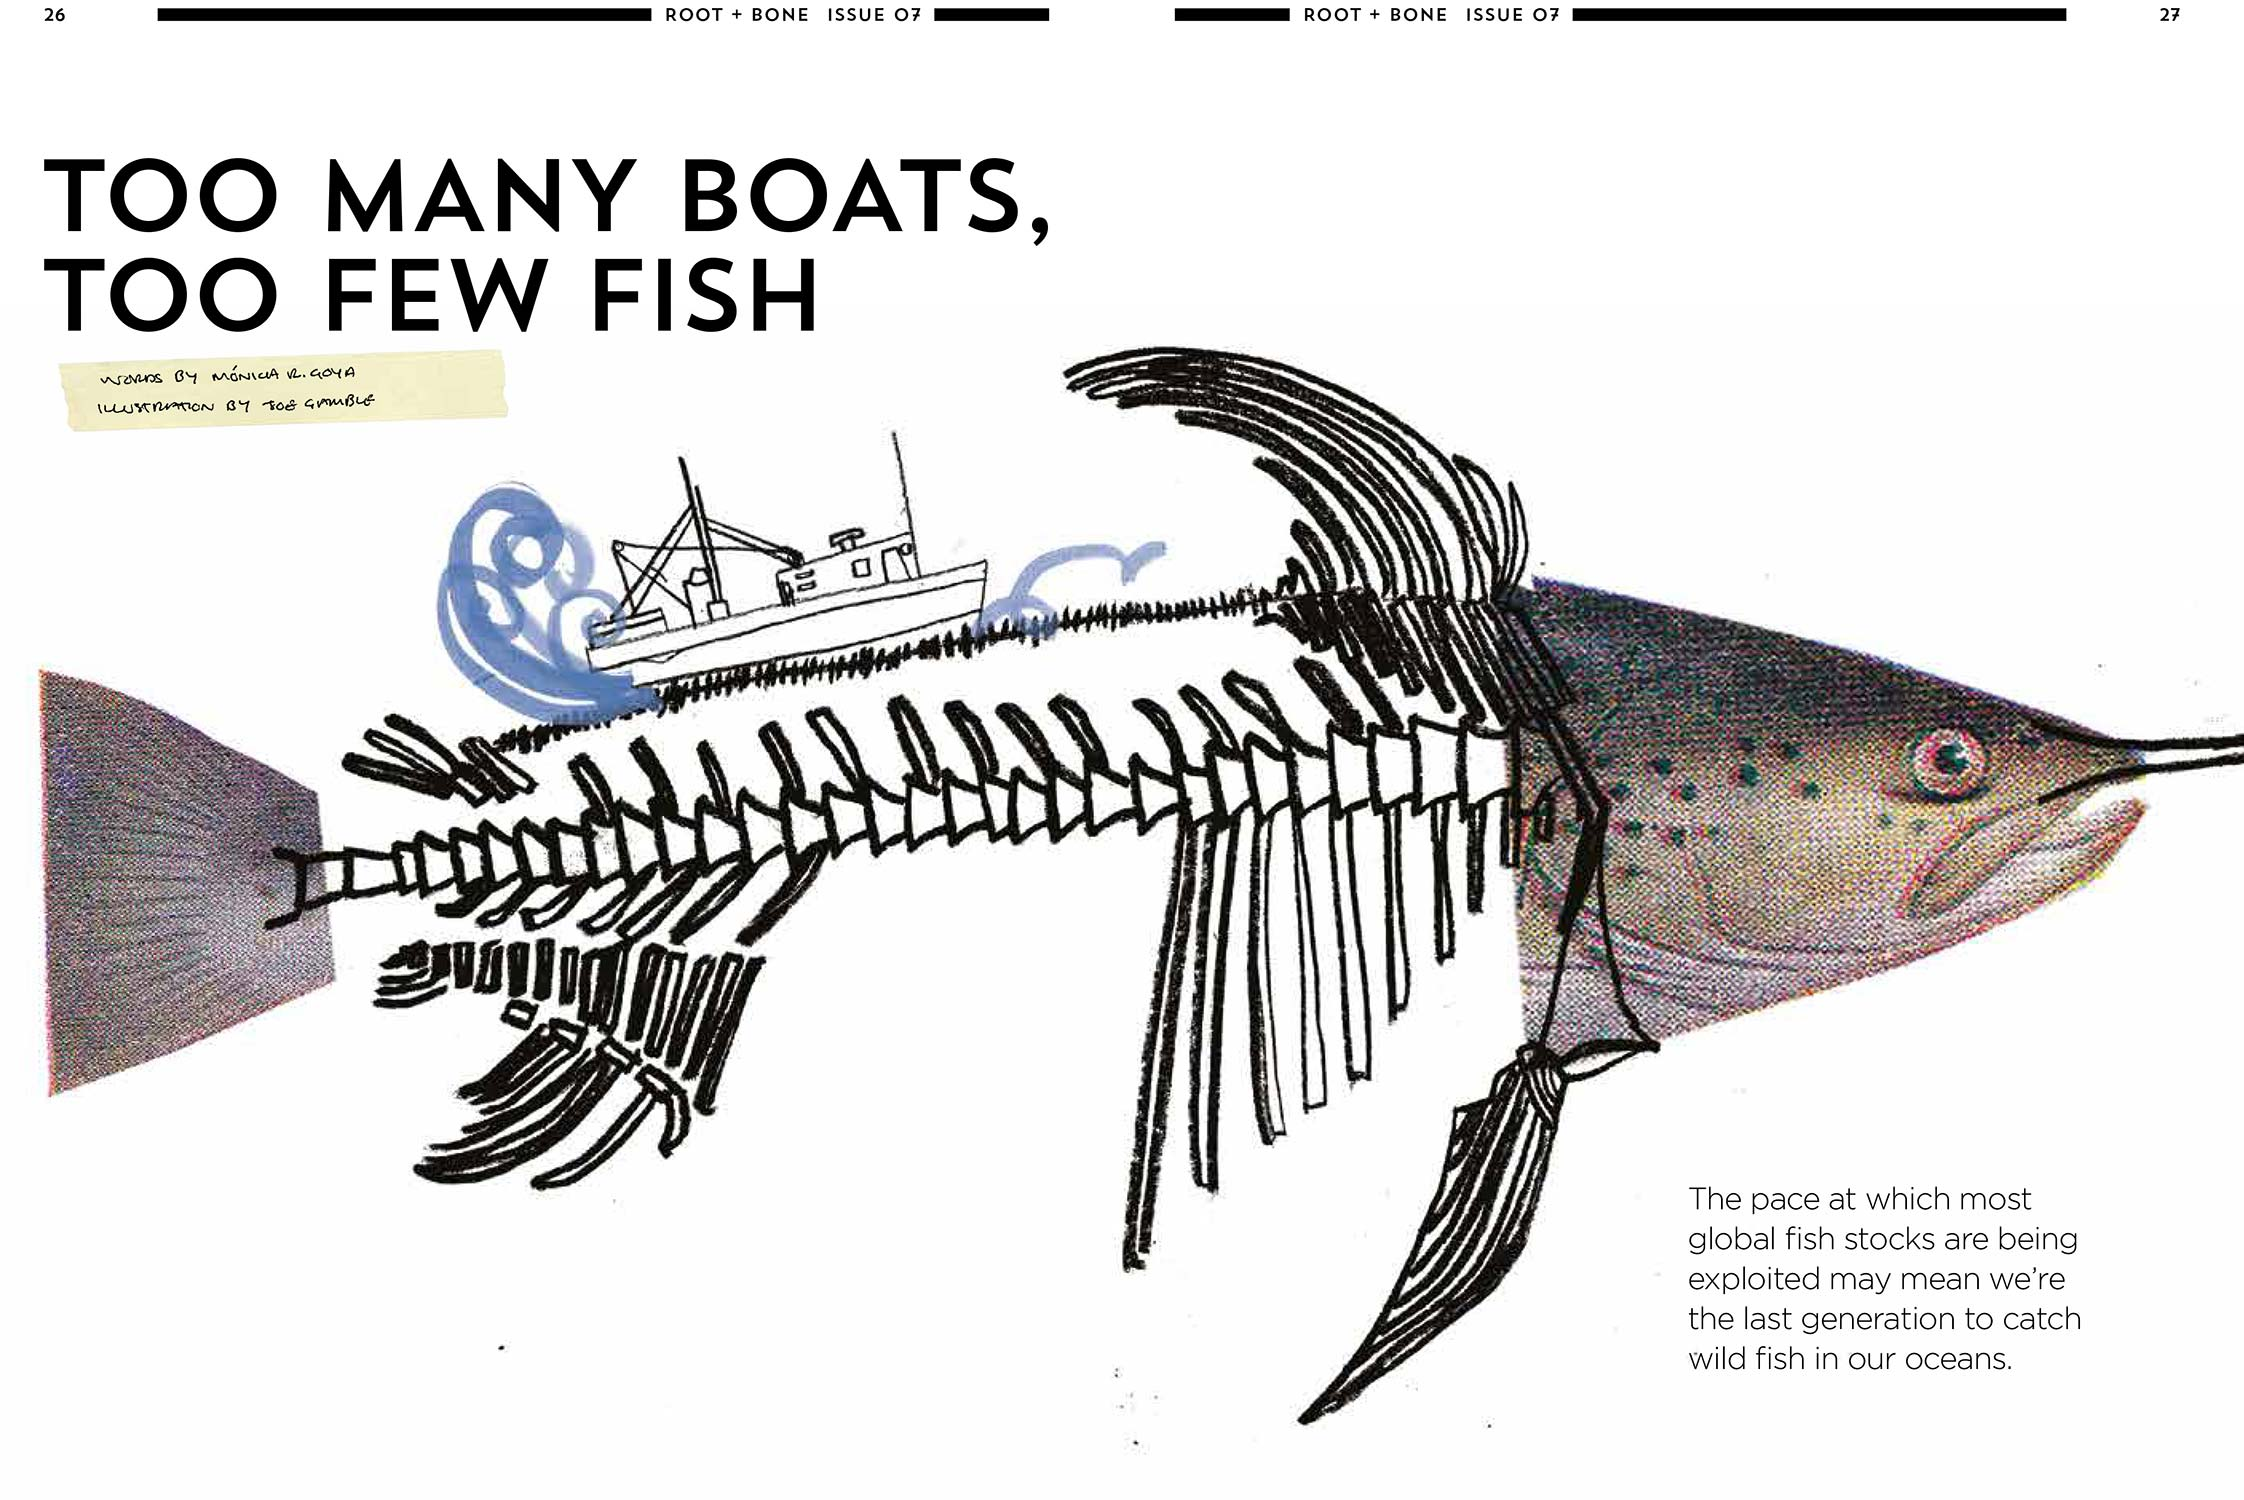 'Too Many Boats, Too Few Fish' - Root and Bone issue 7, 2015 - Words